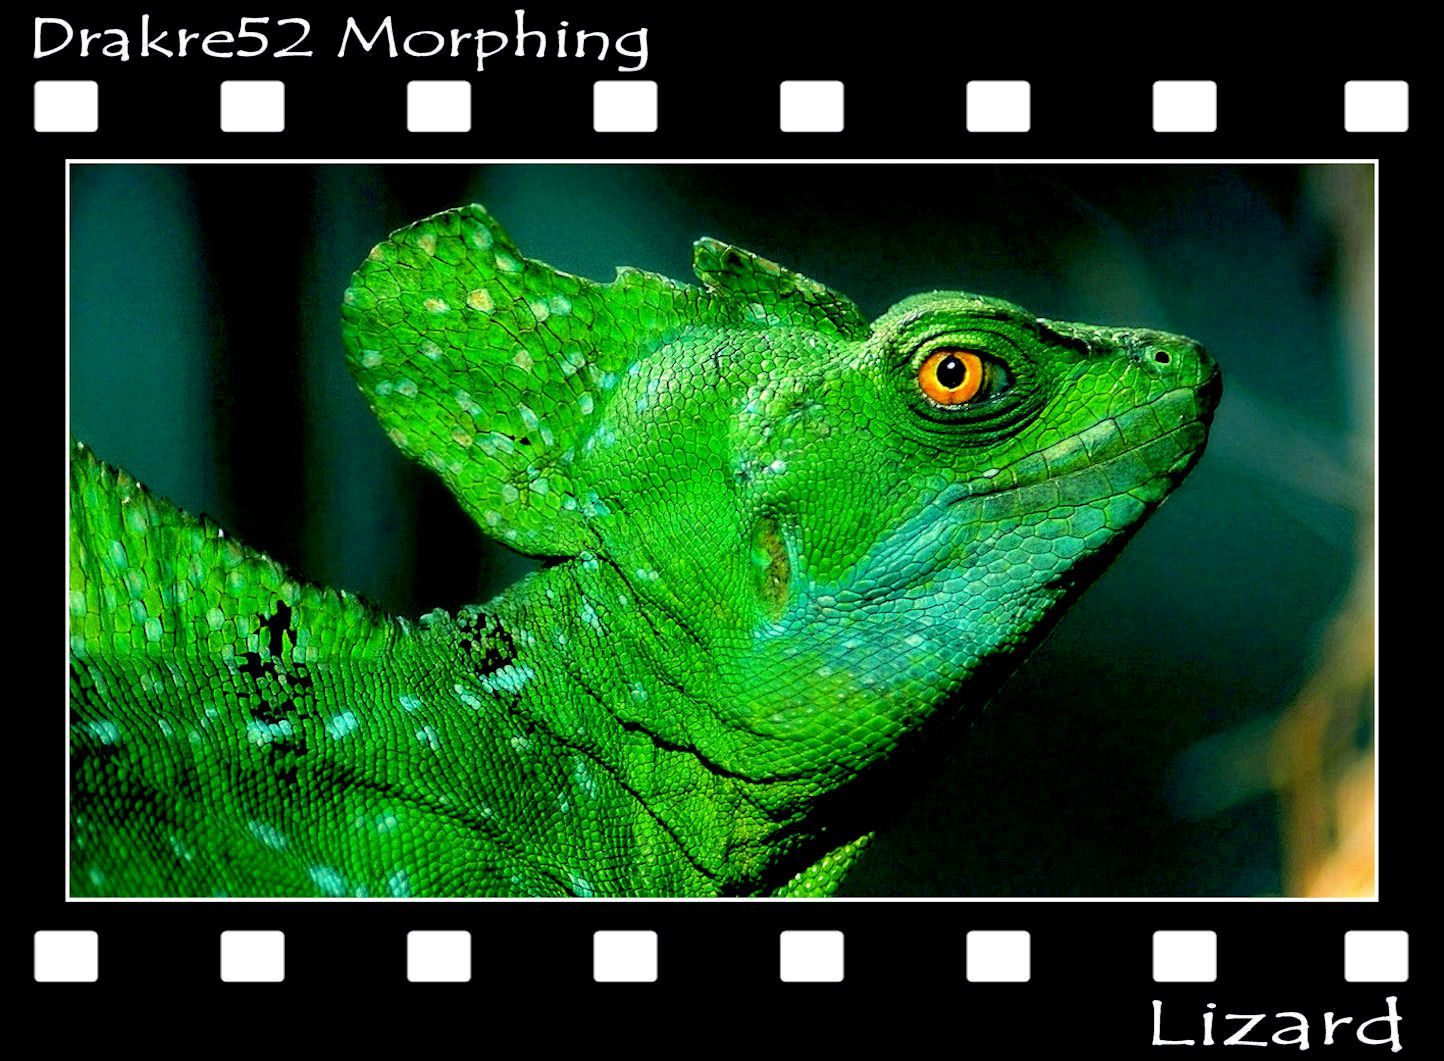 """Lizard Morphing Beautiful photos of lizards that blend together, using Morphing. Music framed with the song: """"The old world"""" by Karpa Watch: https://www.facebook.com/Drakre52/videos/801037290023856/ or https://youtu.be/-lls04QTTr0"""